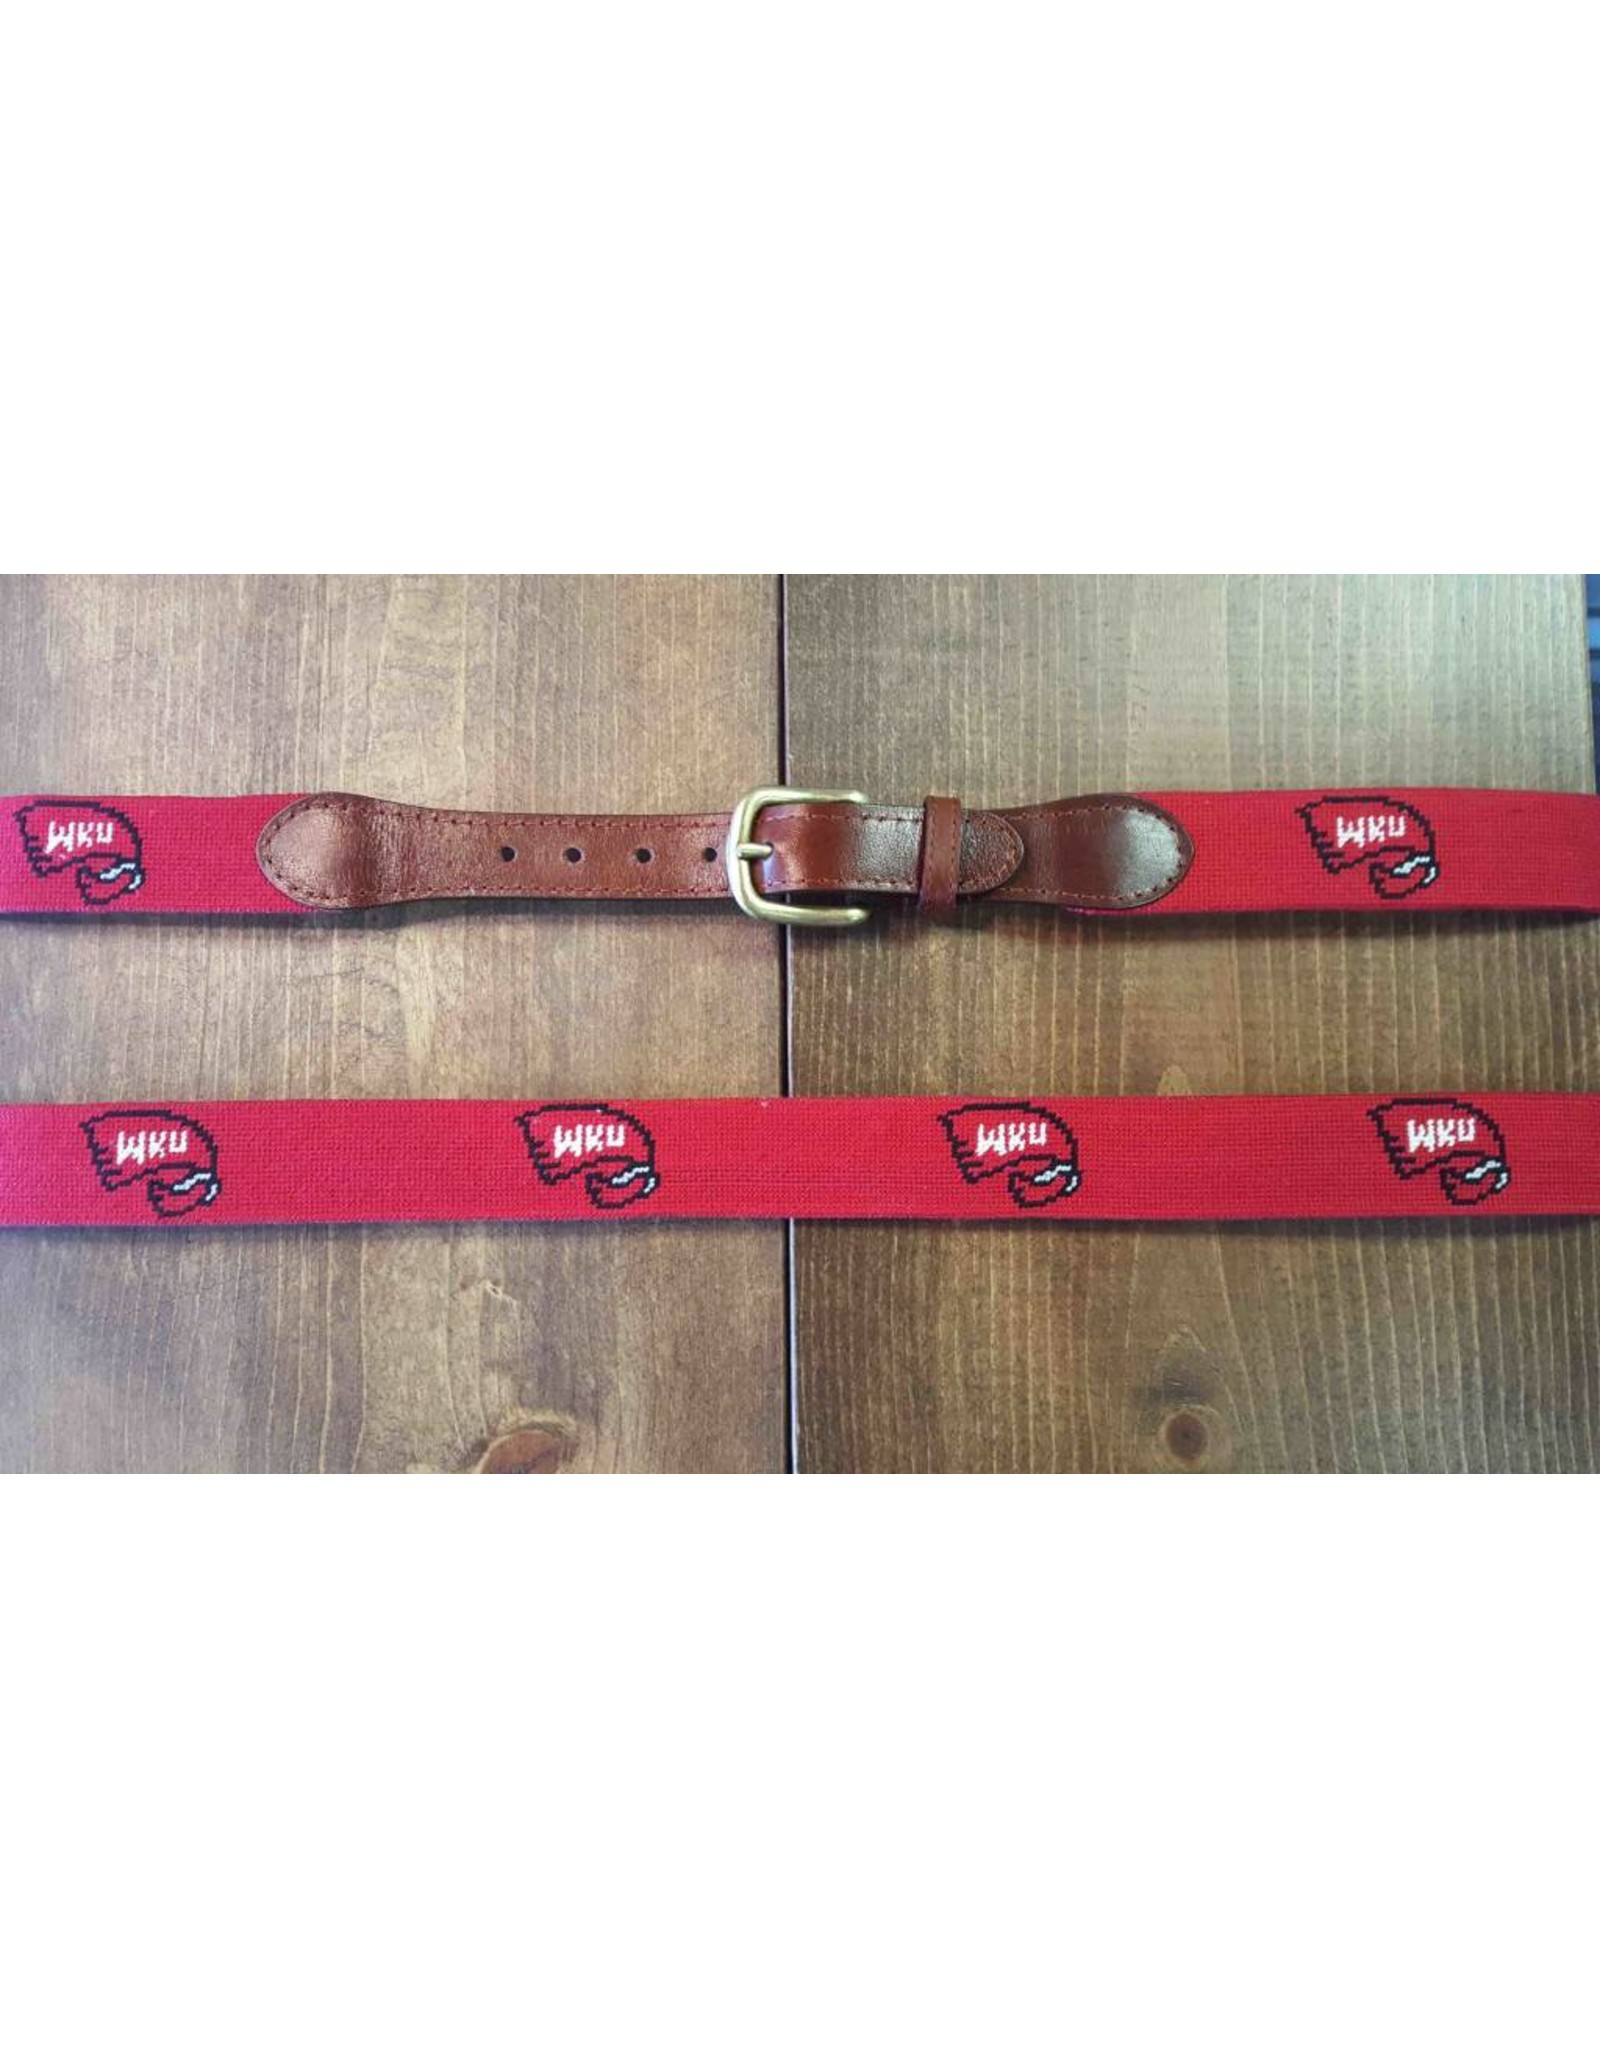 Smathers and Branson Smathers and Branson WKU Belt in Red